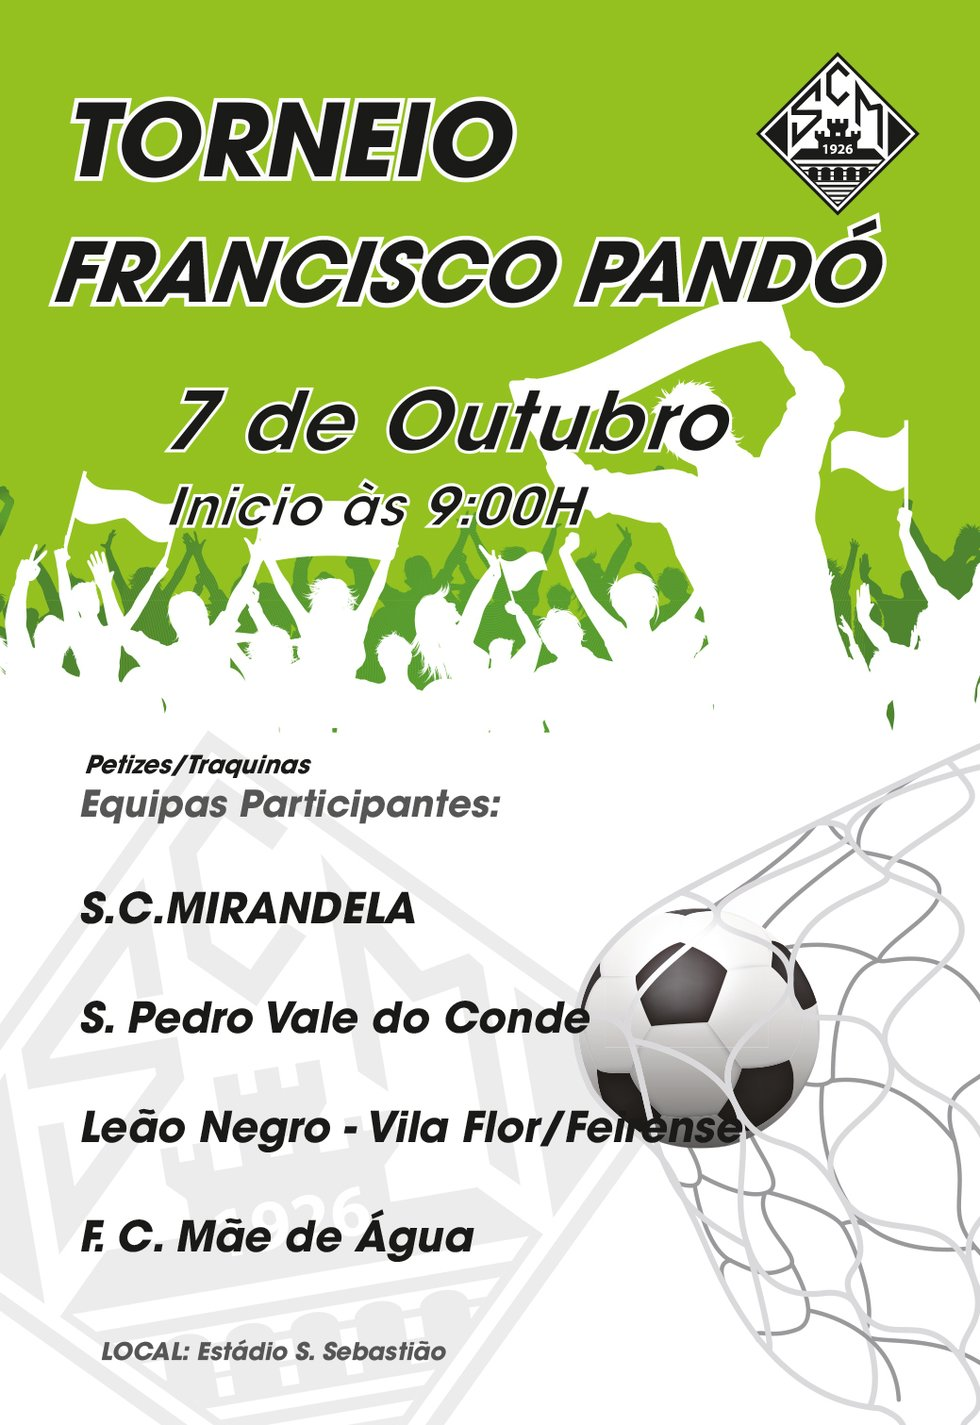 Torneio francisco pand  1 980 2500